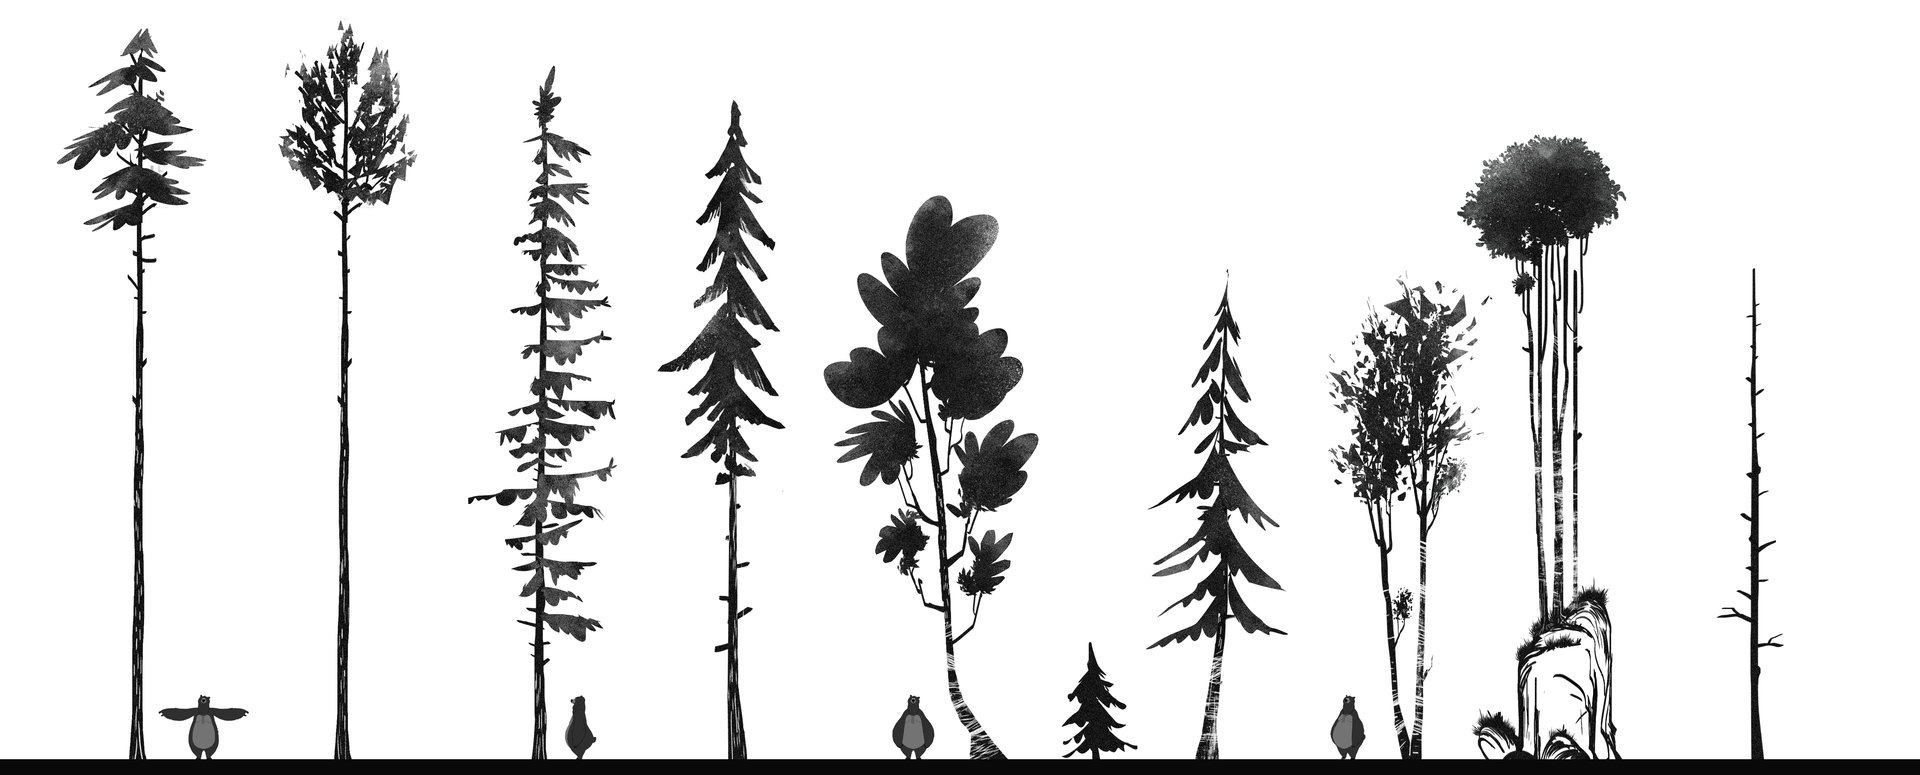 Clement dartigues sapins silhouettes